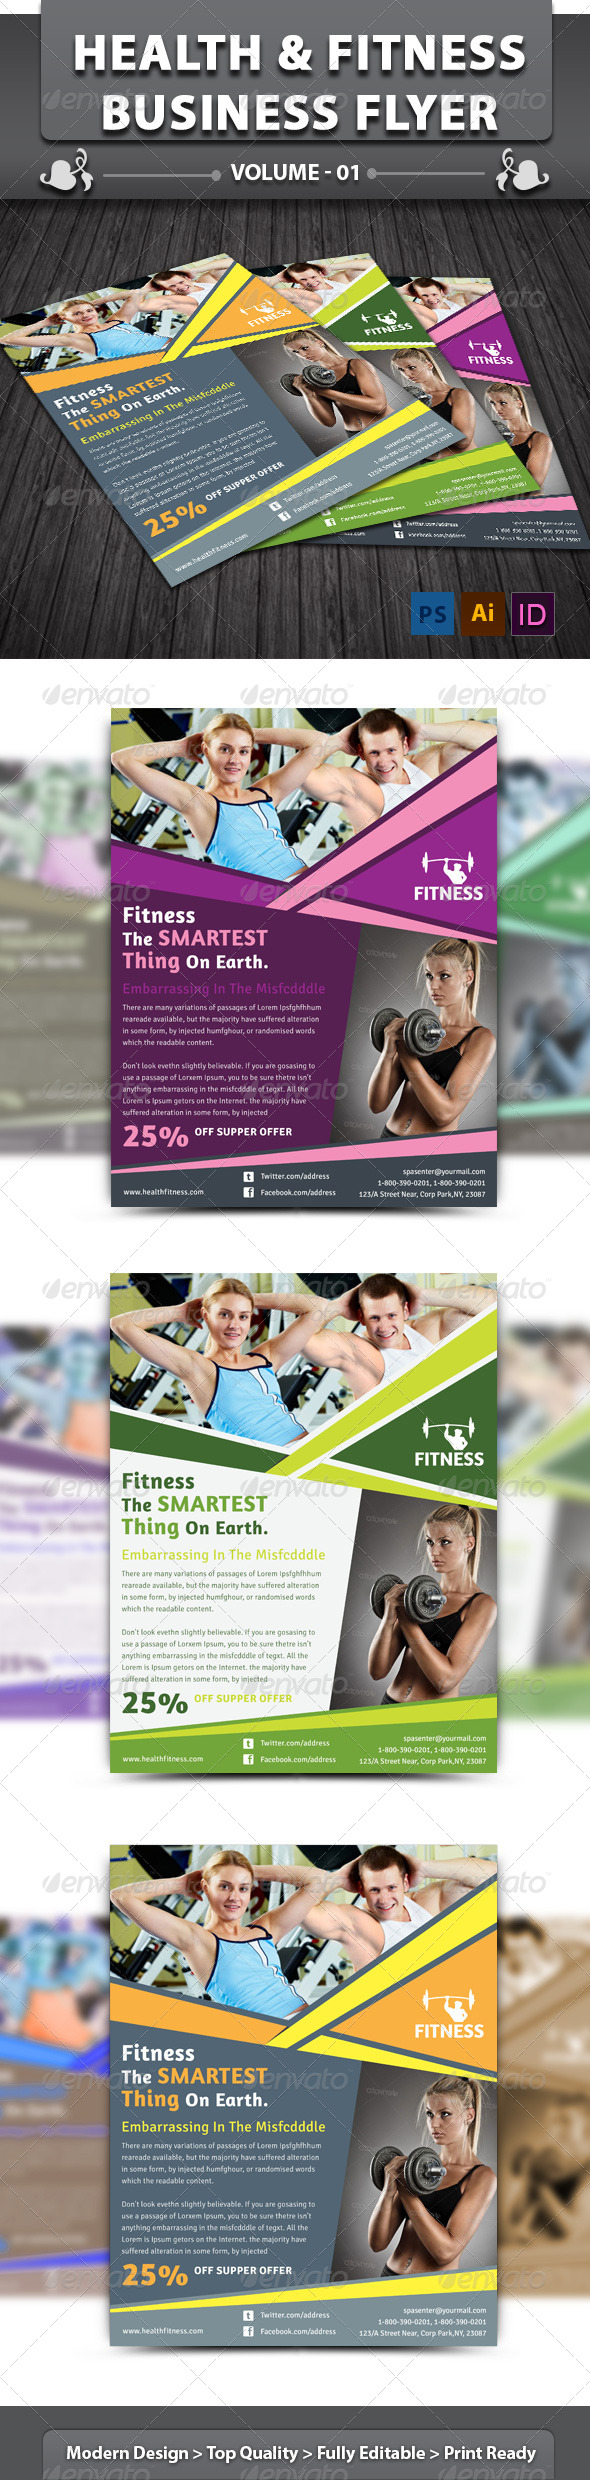 Health & Fitness Center Flyer | Volume 1 - Corporate Flyers